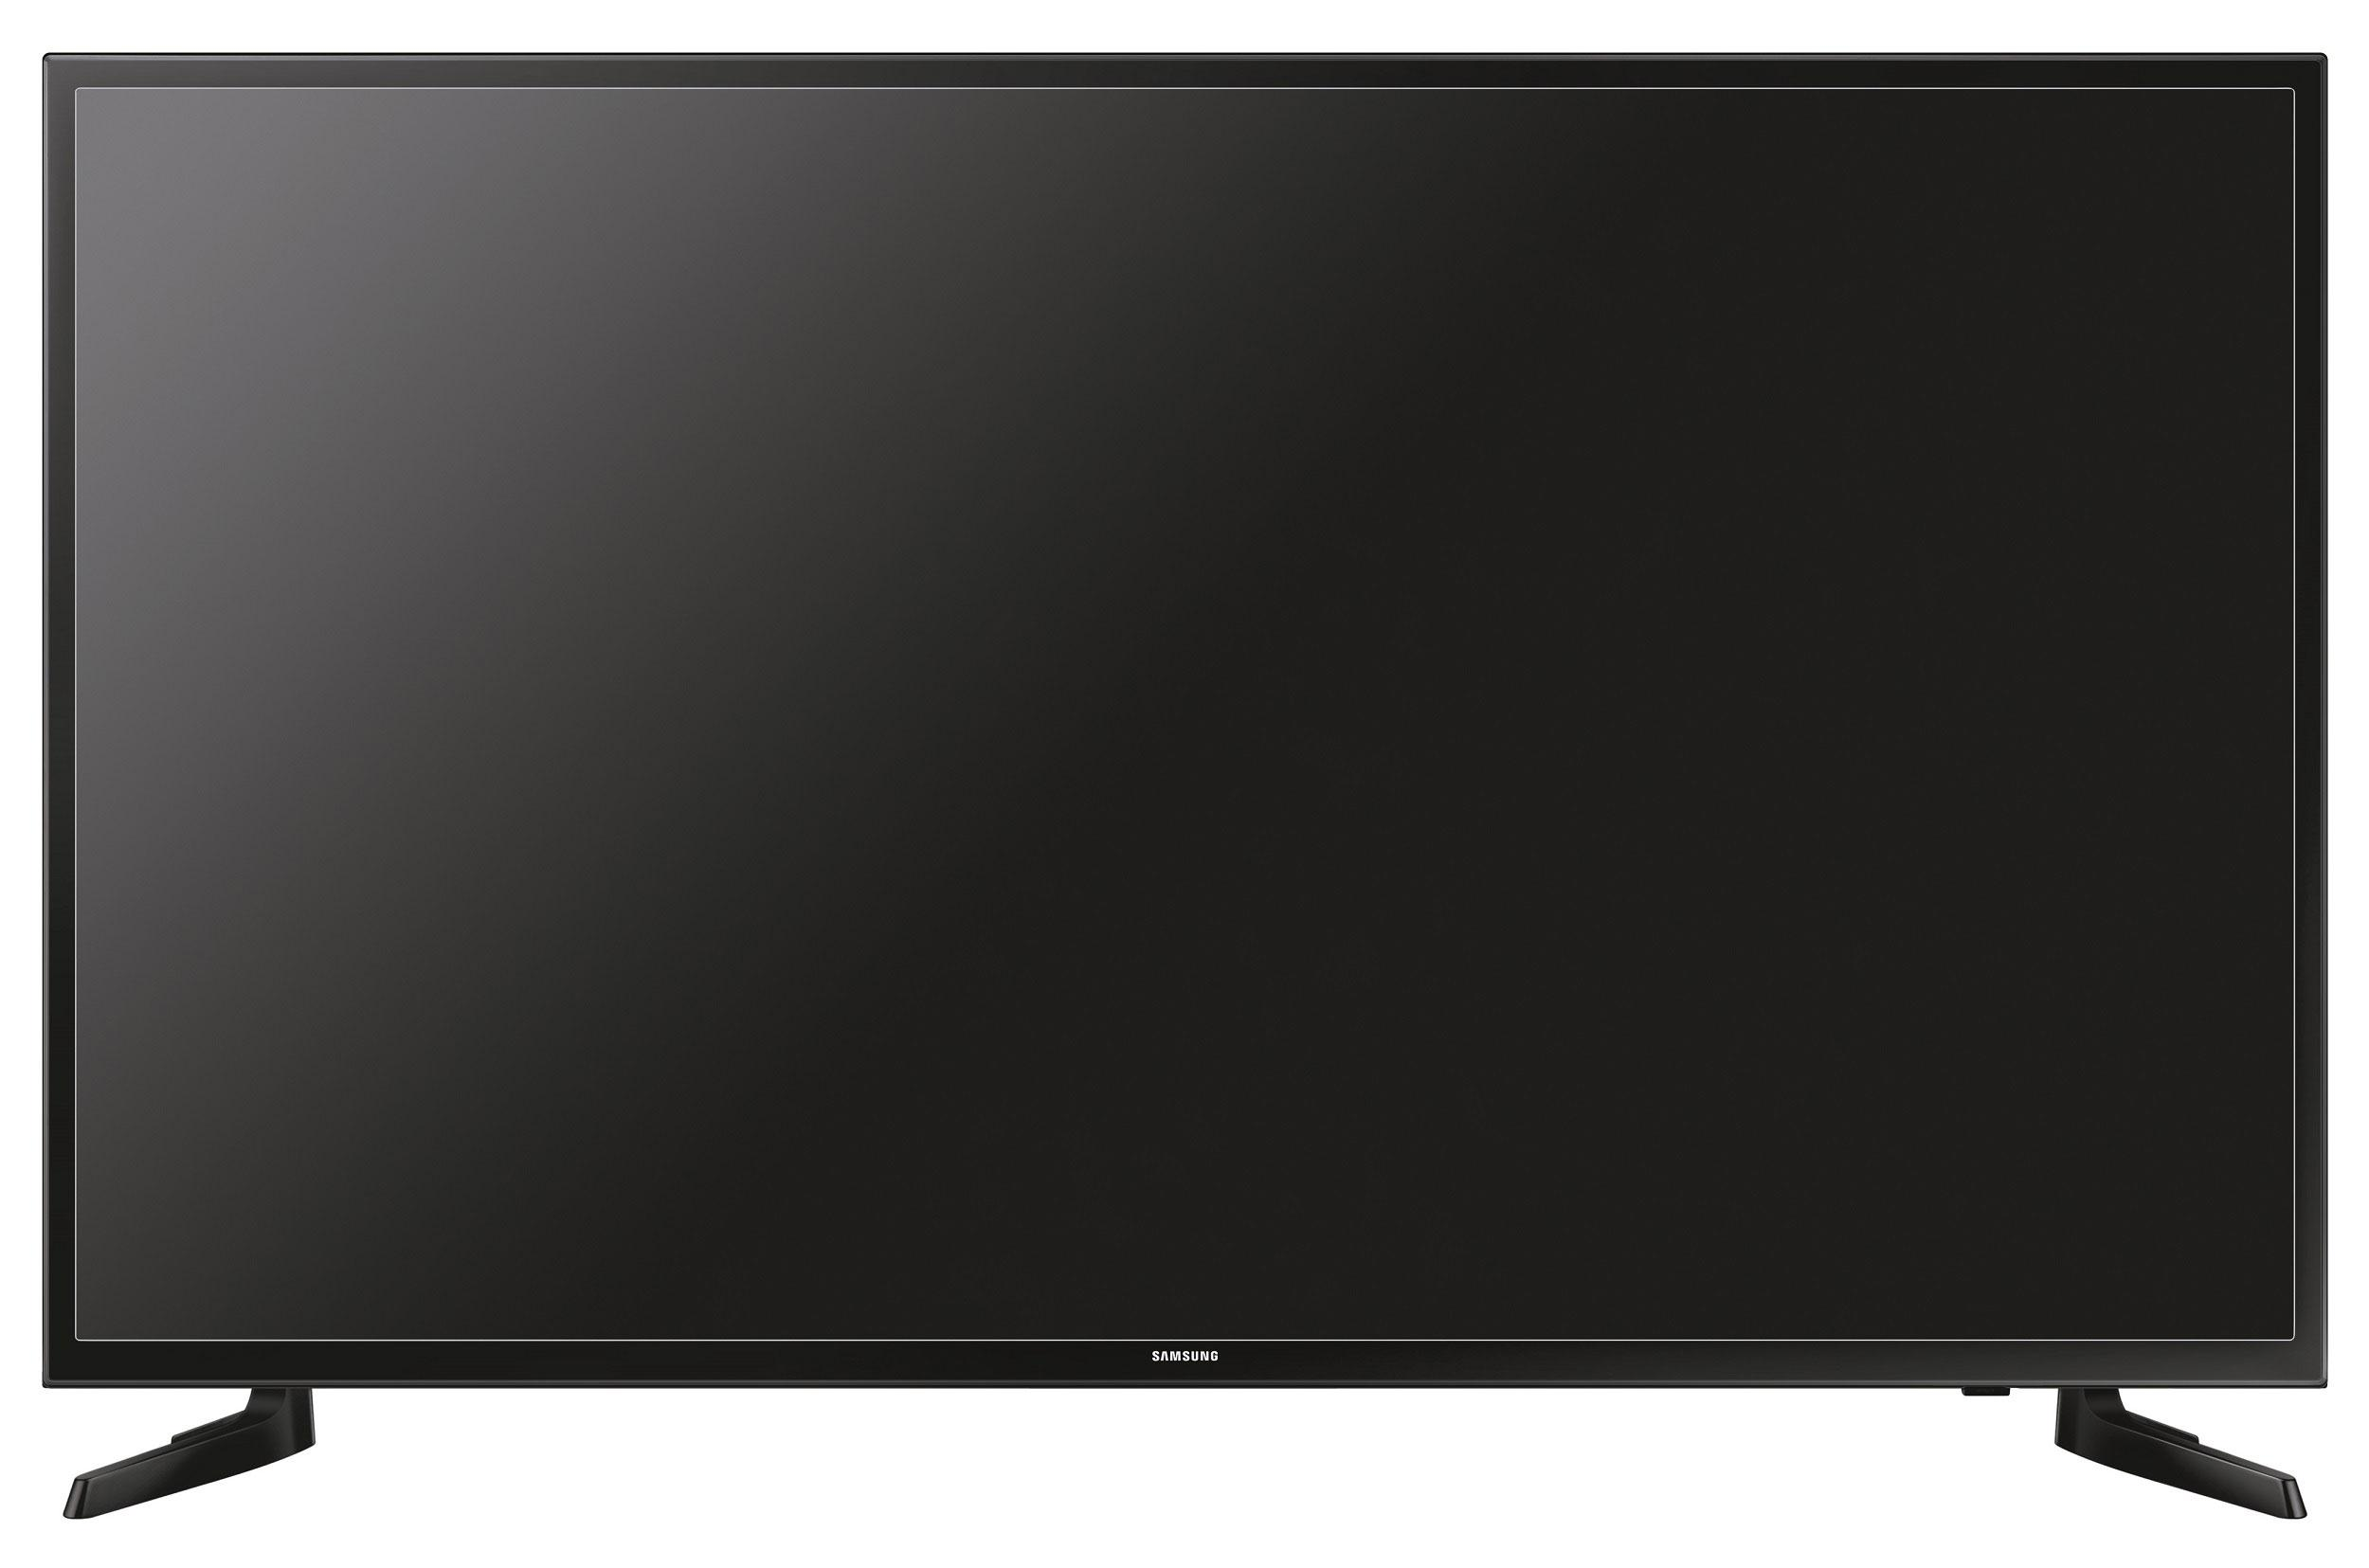 samsung ju6050 101 cm 40 zoll fernseher ultra hd triple tuner smart tv. Black Bedroom Furniture Sets. Home Design Ideas